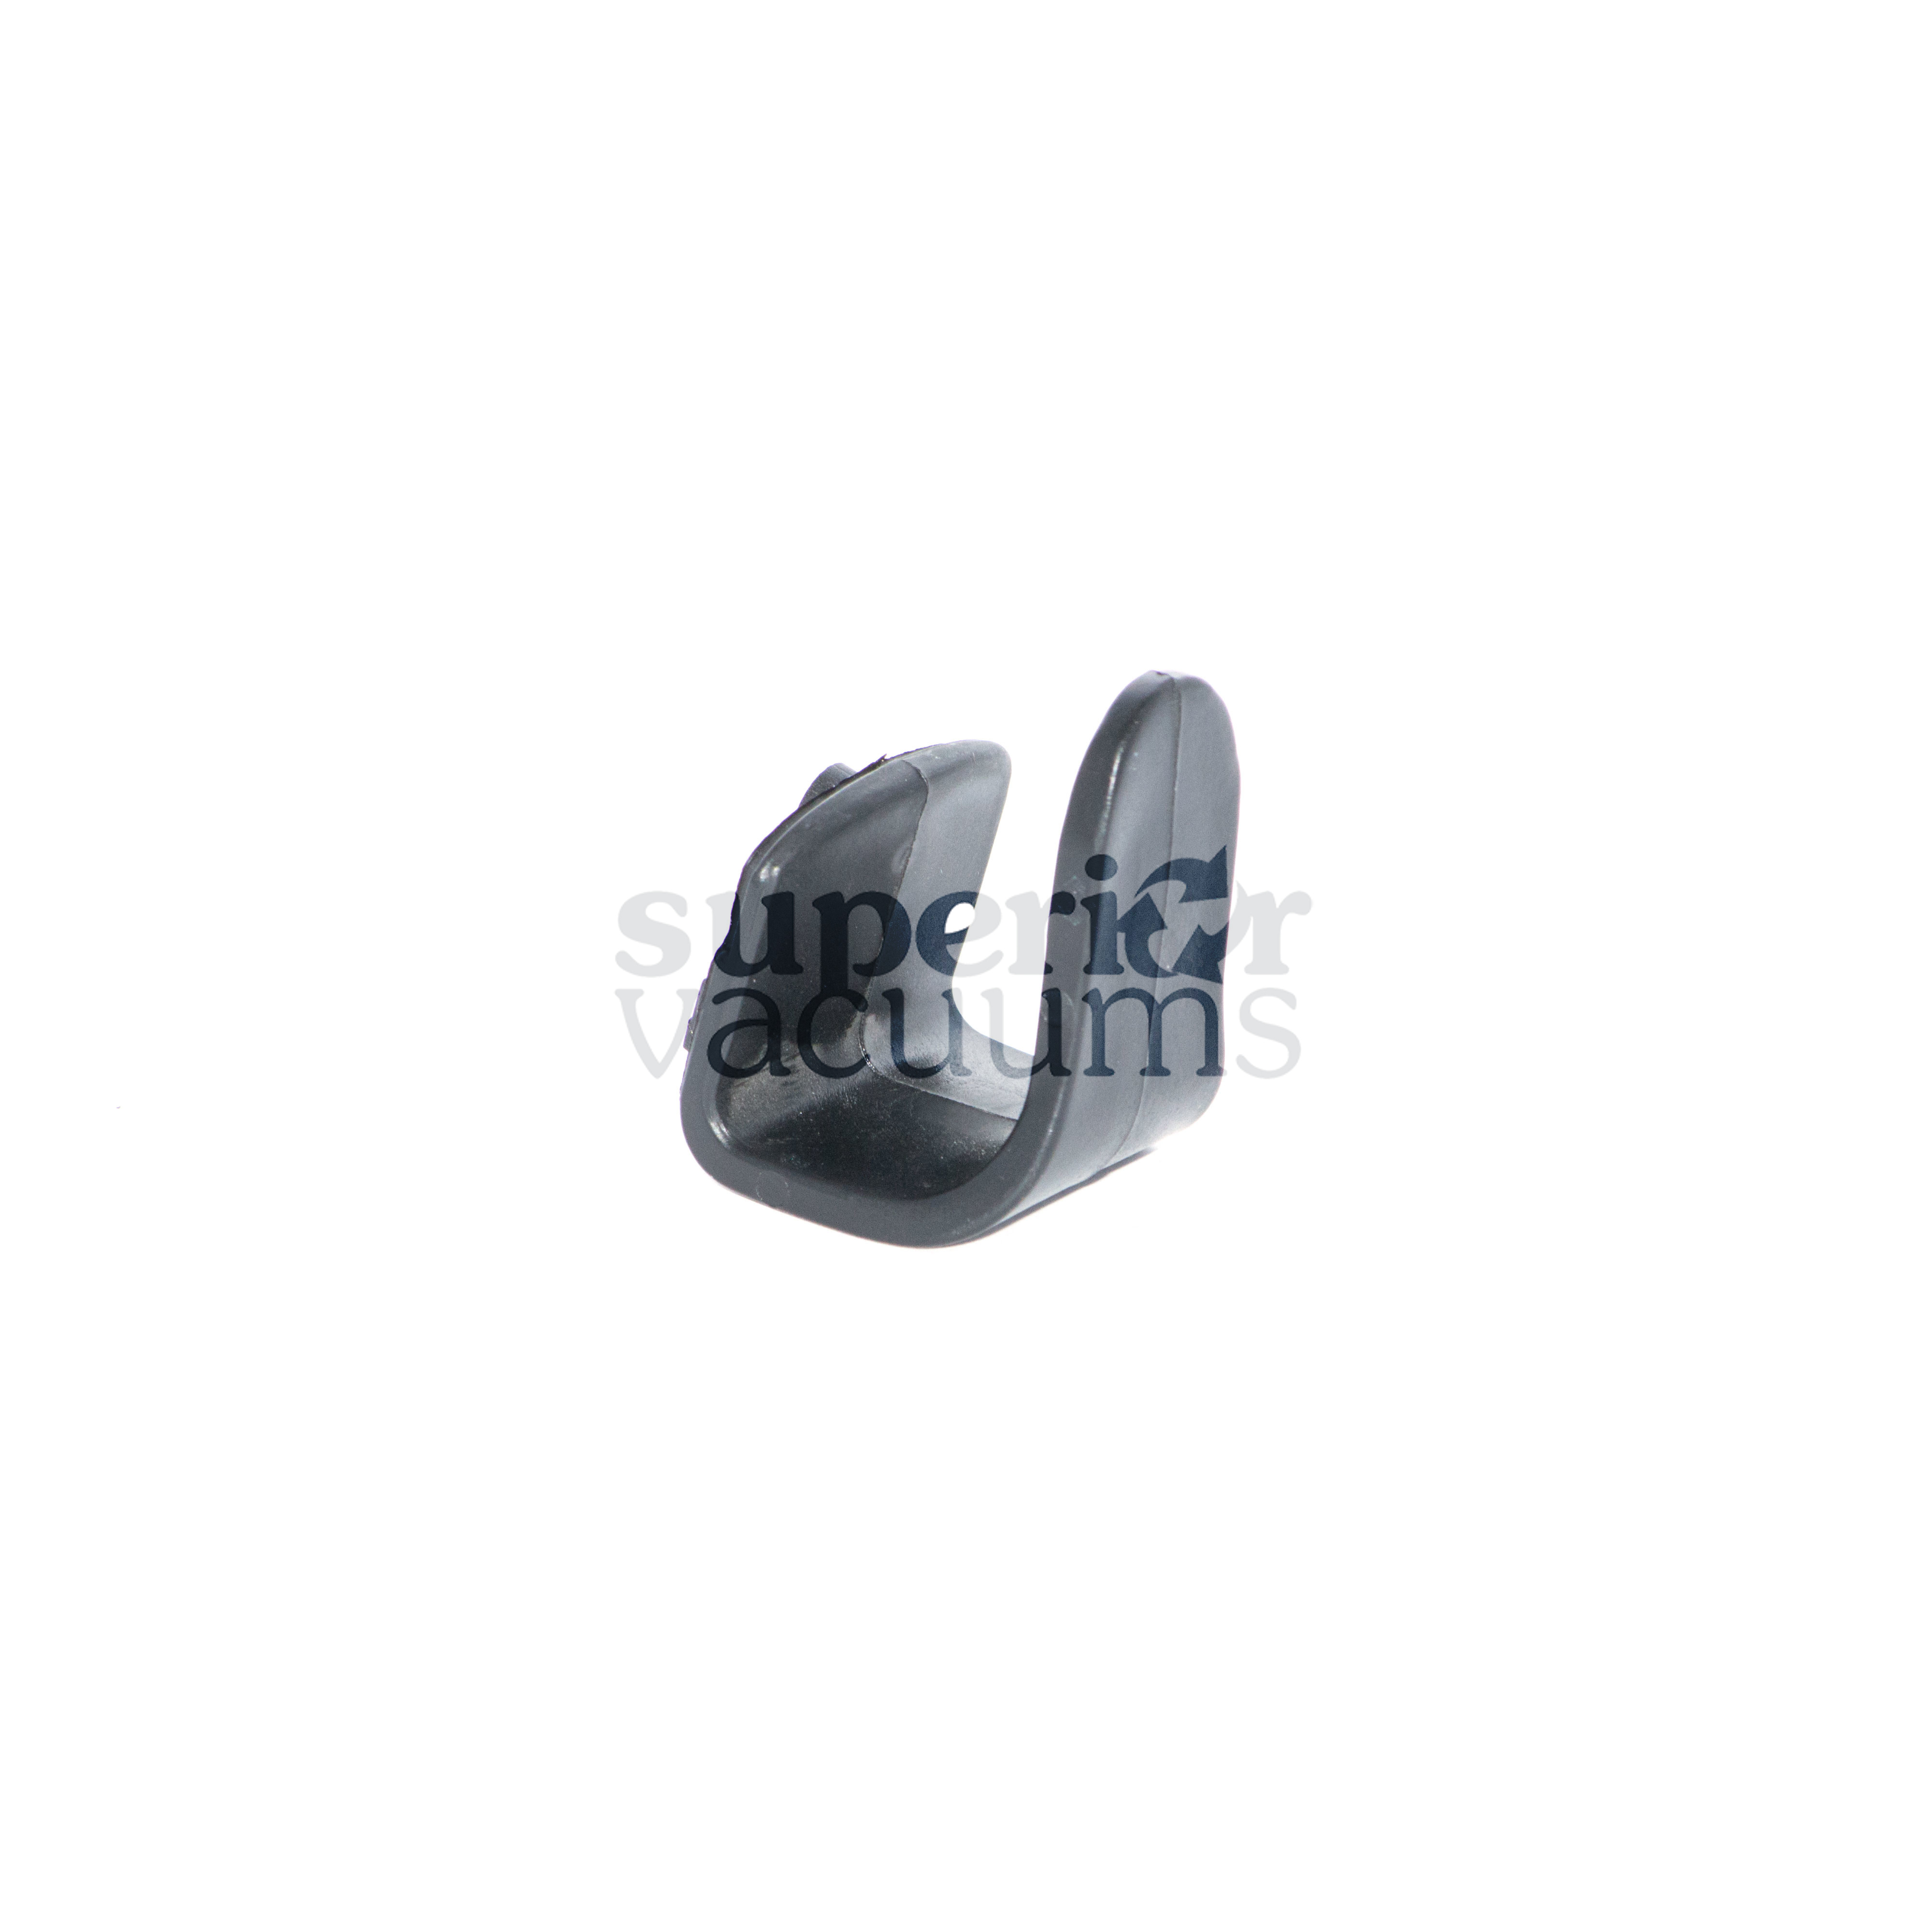 Vc9340 Lower Cord Hook